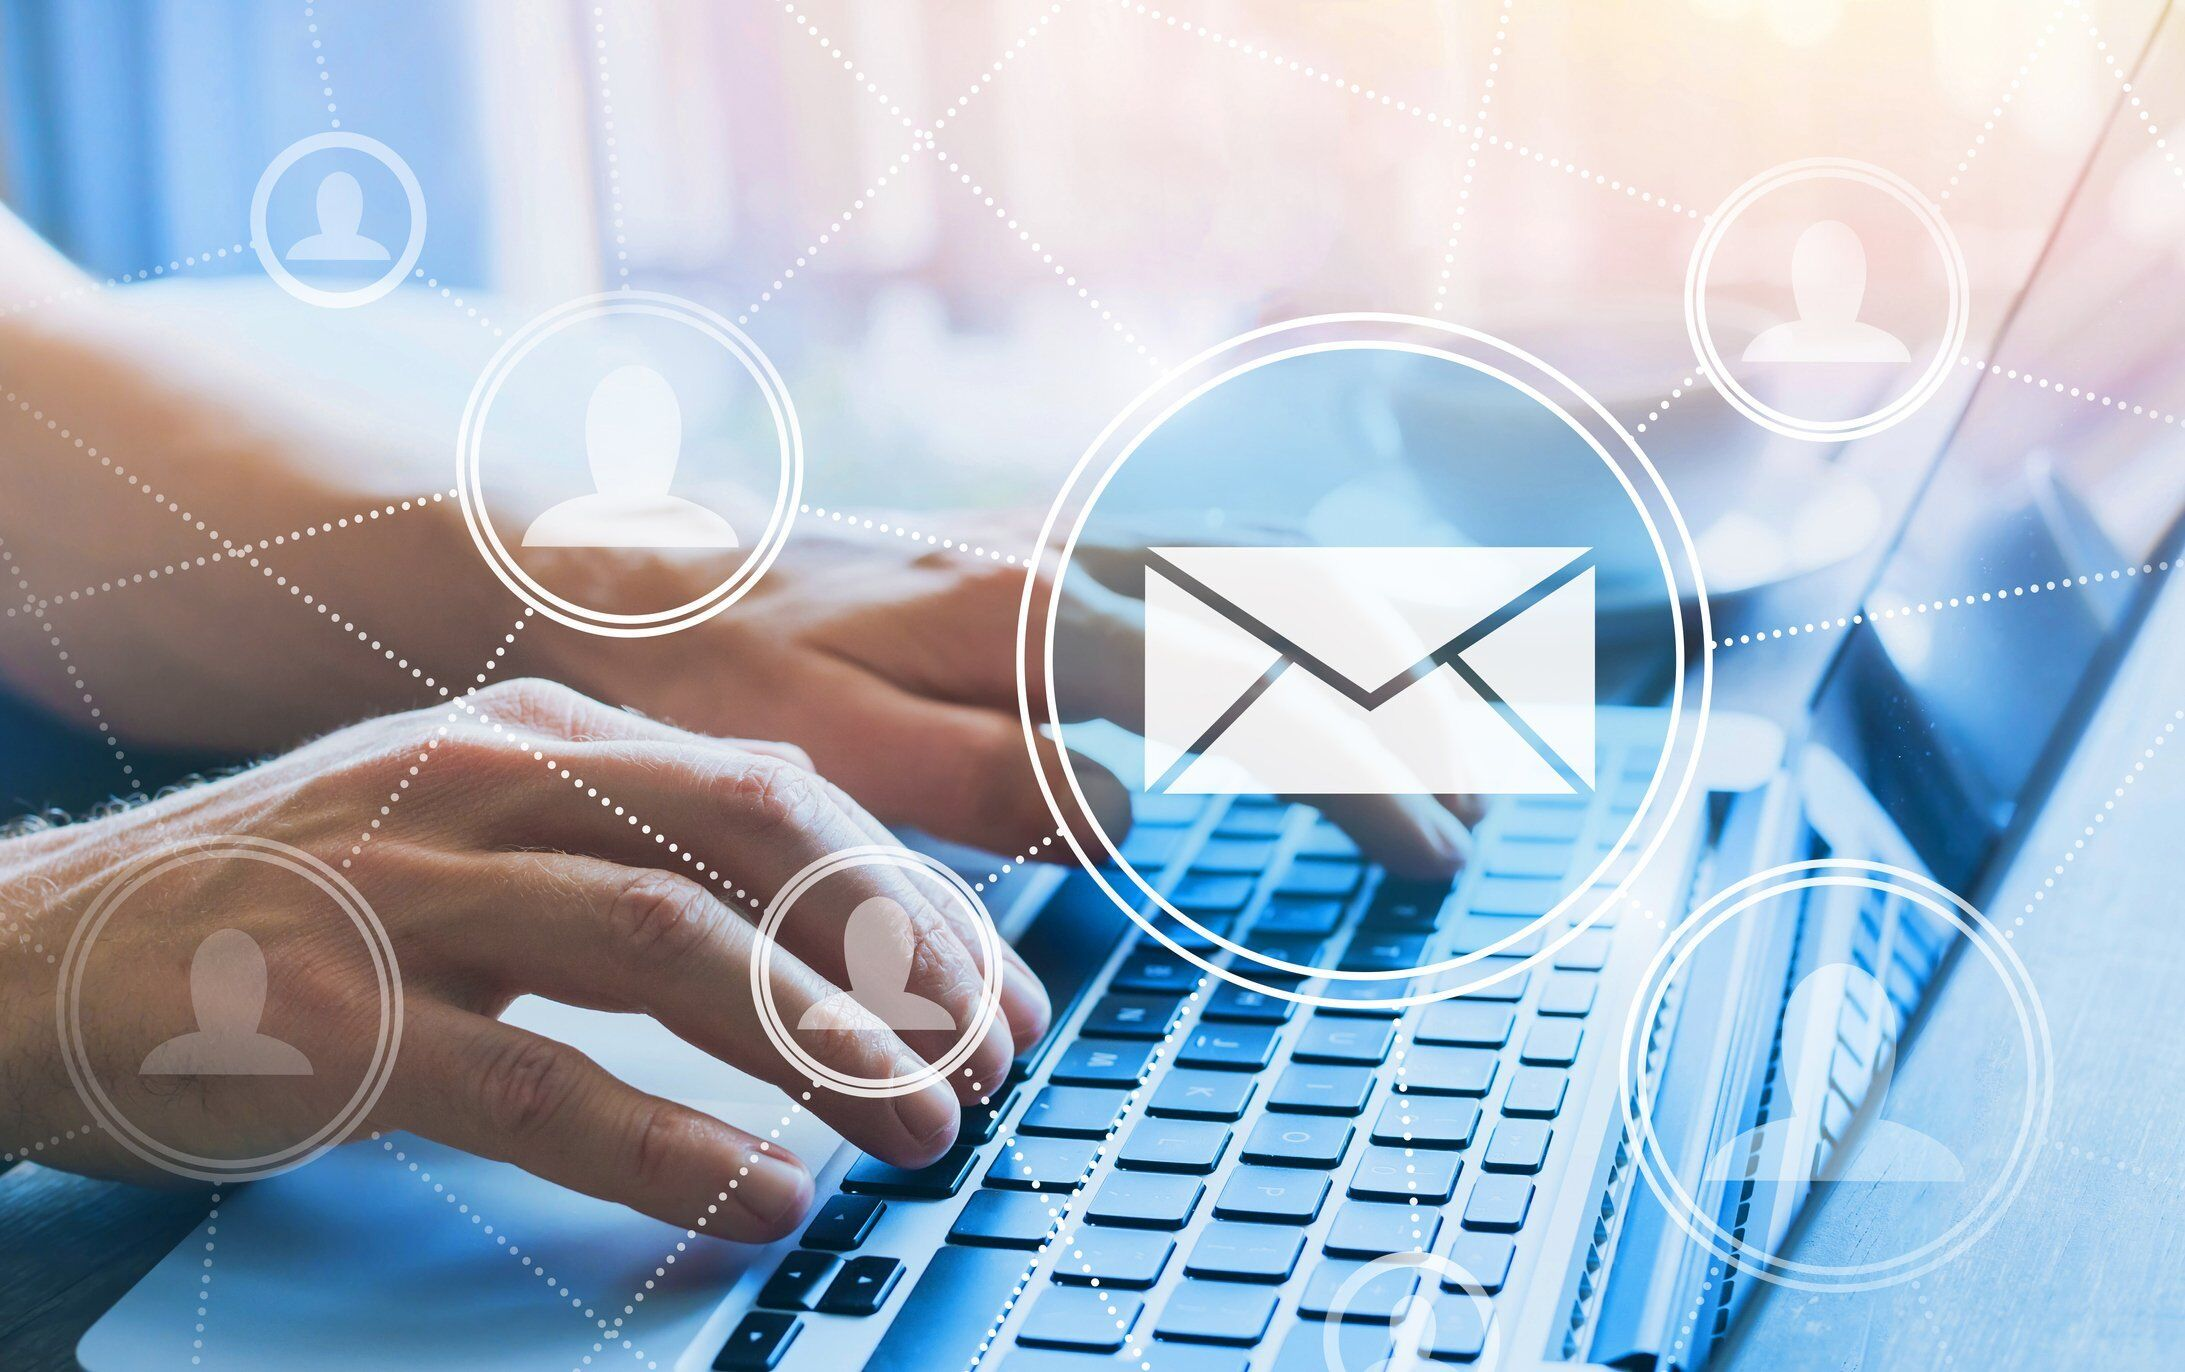 10 Tips to Boost Email Marketing Engagement